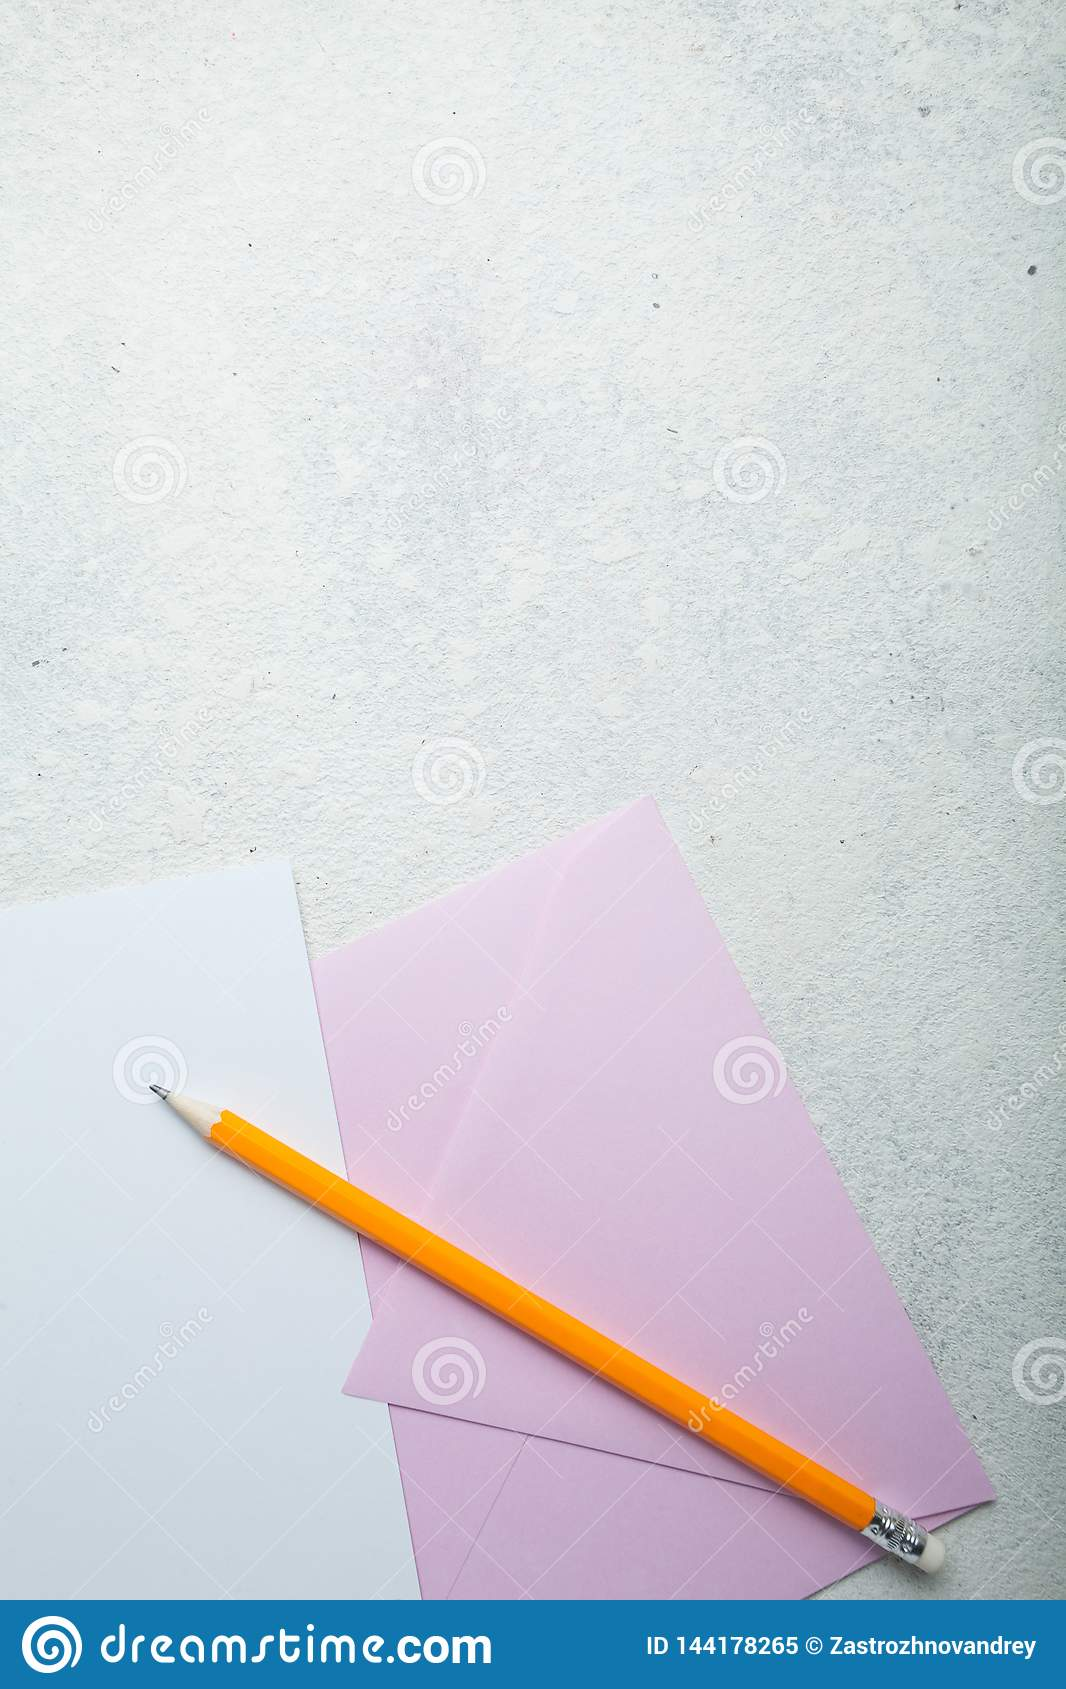 Empty open romantic letter with a pink envelope on a white background